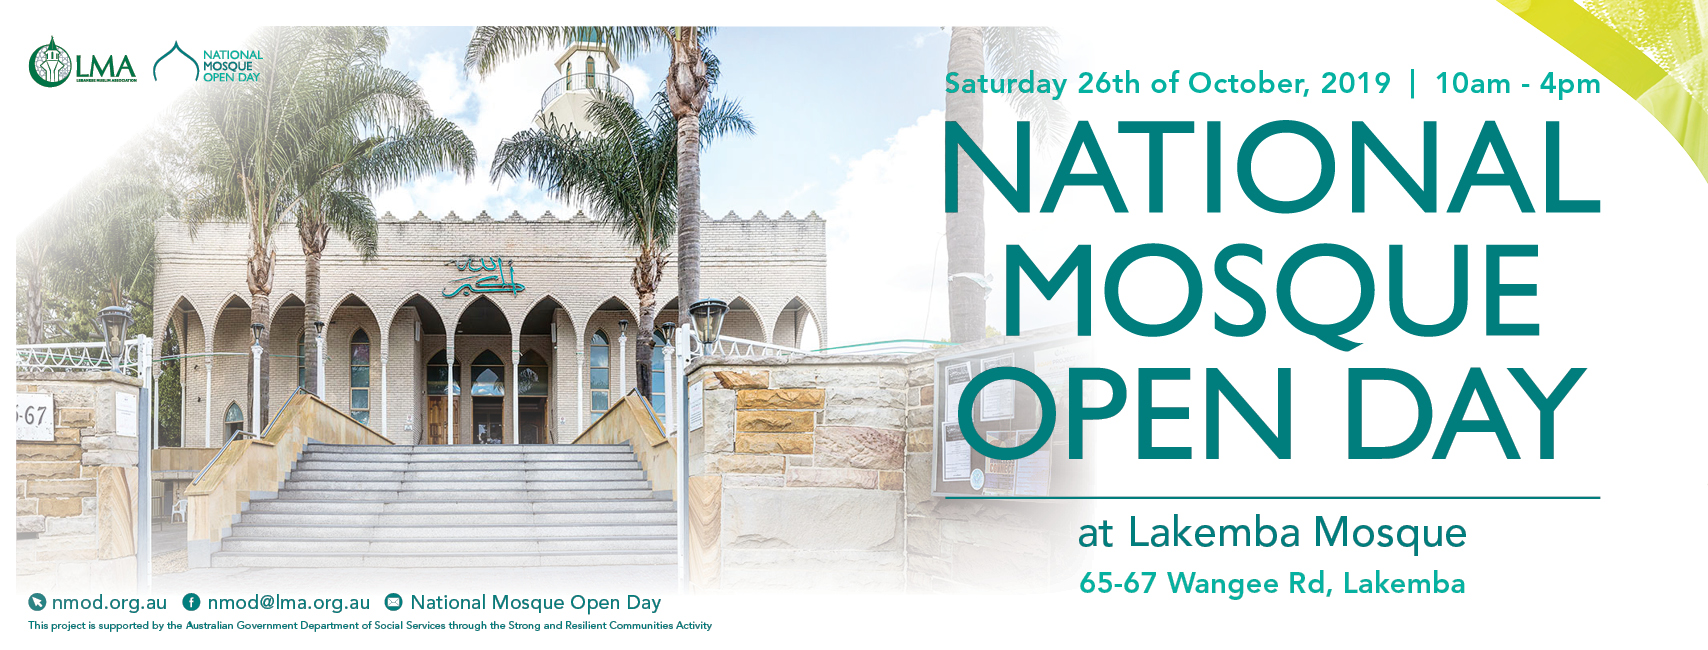 Lakemba Mosque Open Day